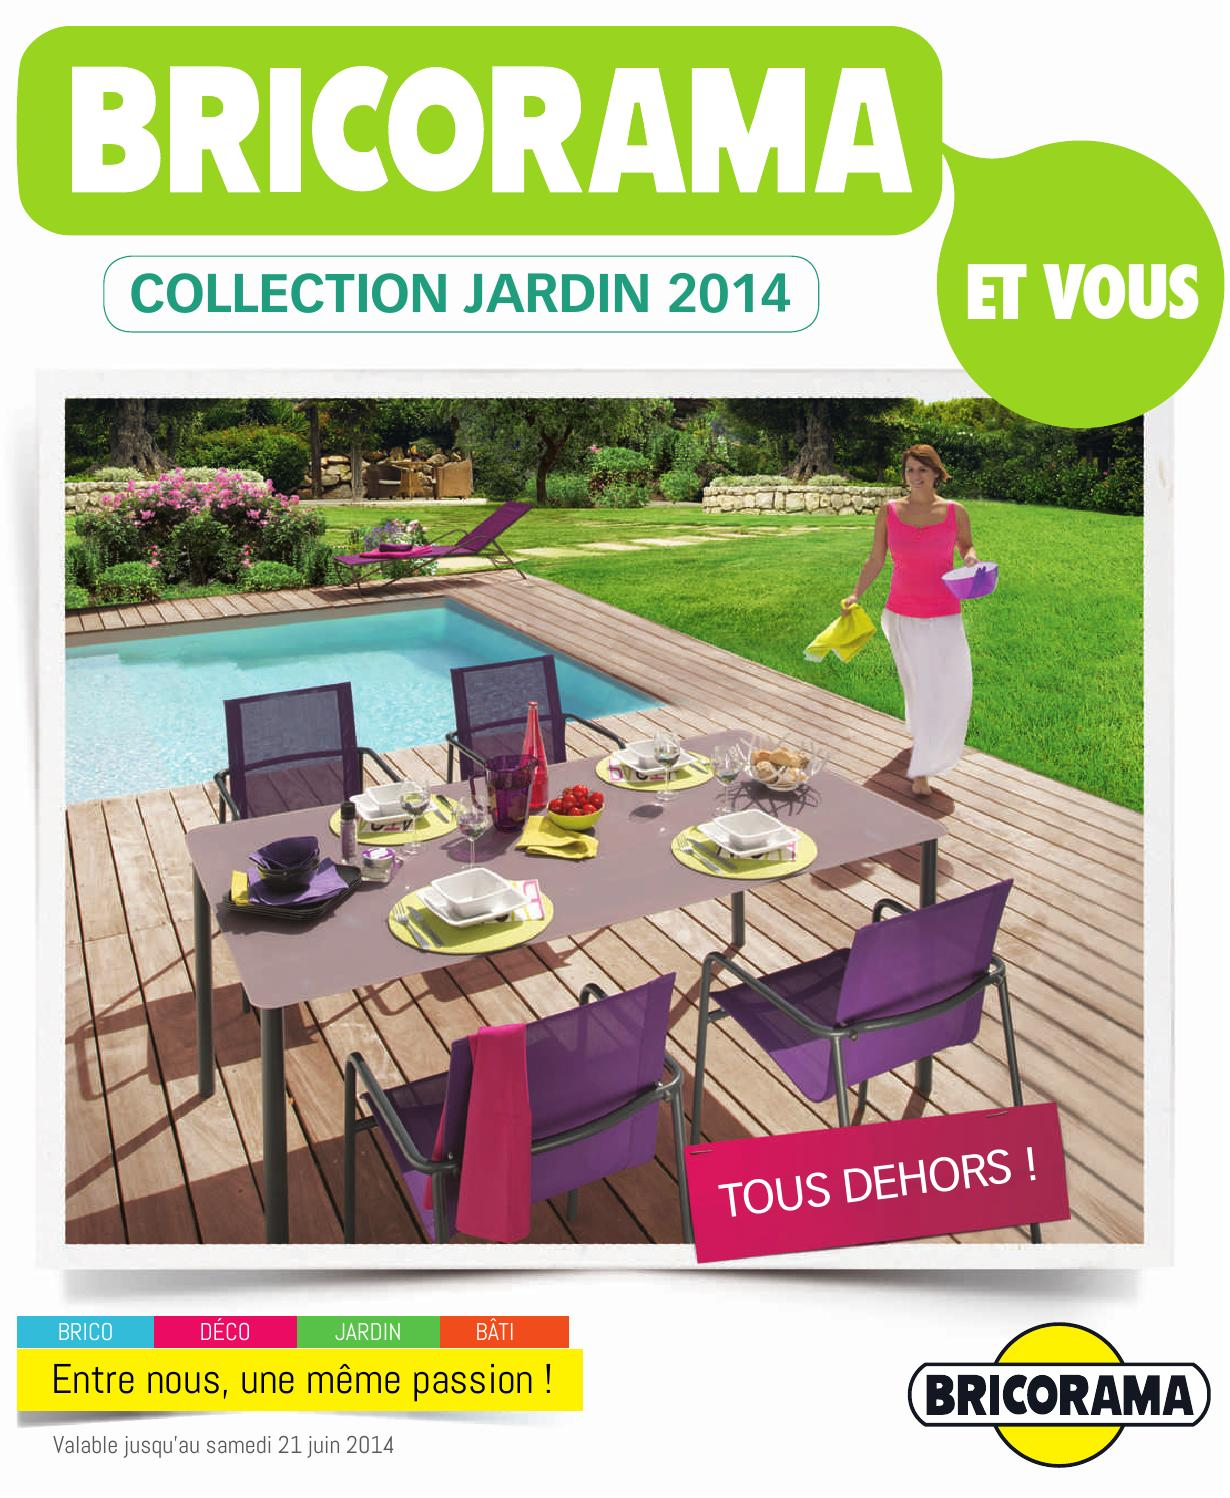 Salon De Jardin Encastrable 10 Places Élégant Catalogue Bricorama Jardin 2014 by Joe Monroe issuu Of 27 Luxe Salon De Jardin Encastrable 10 Places